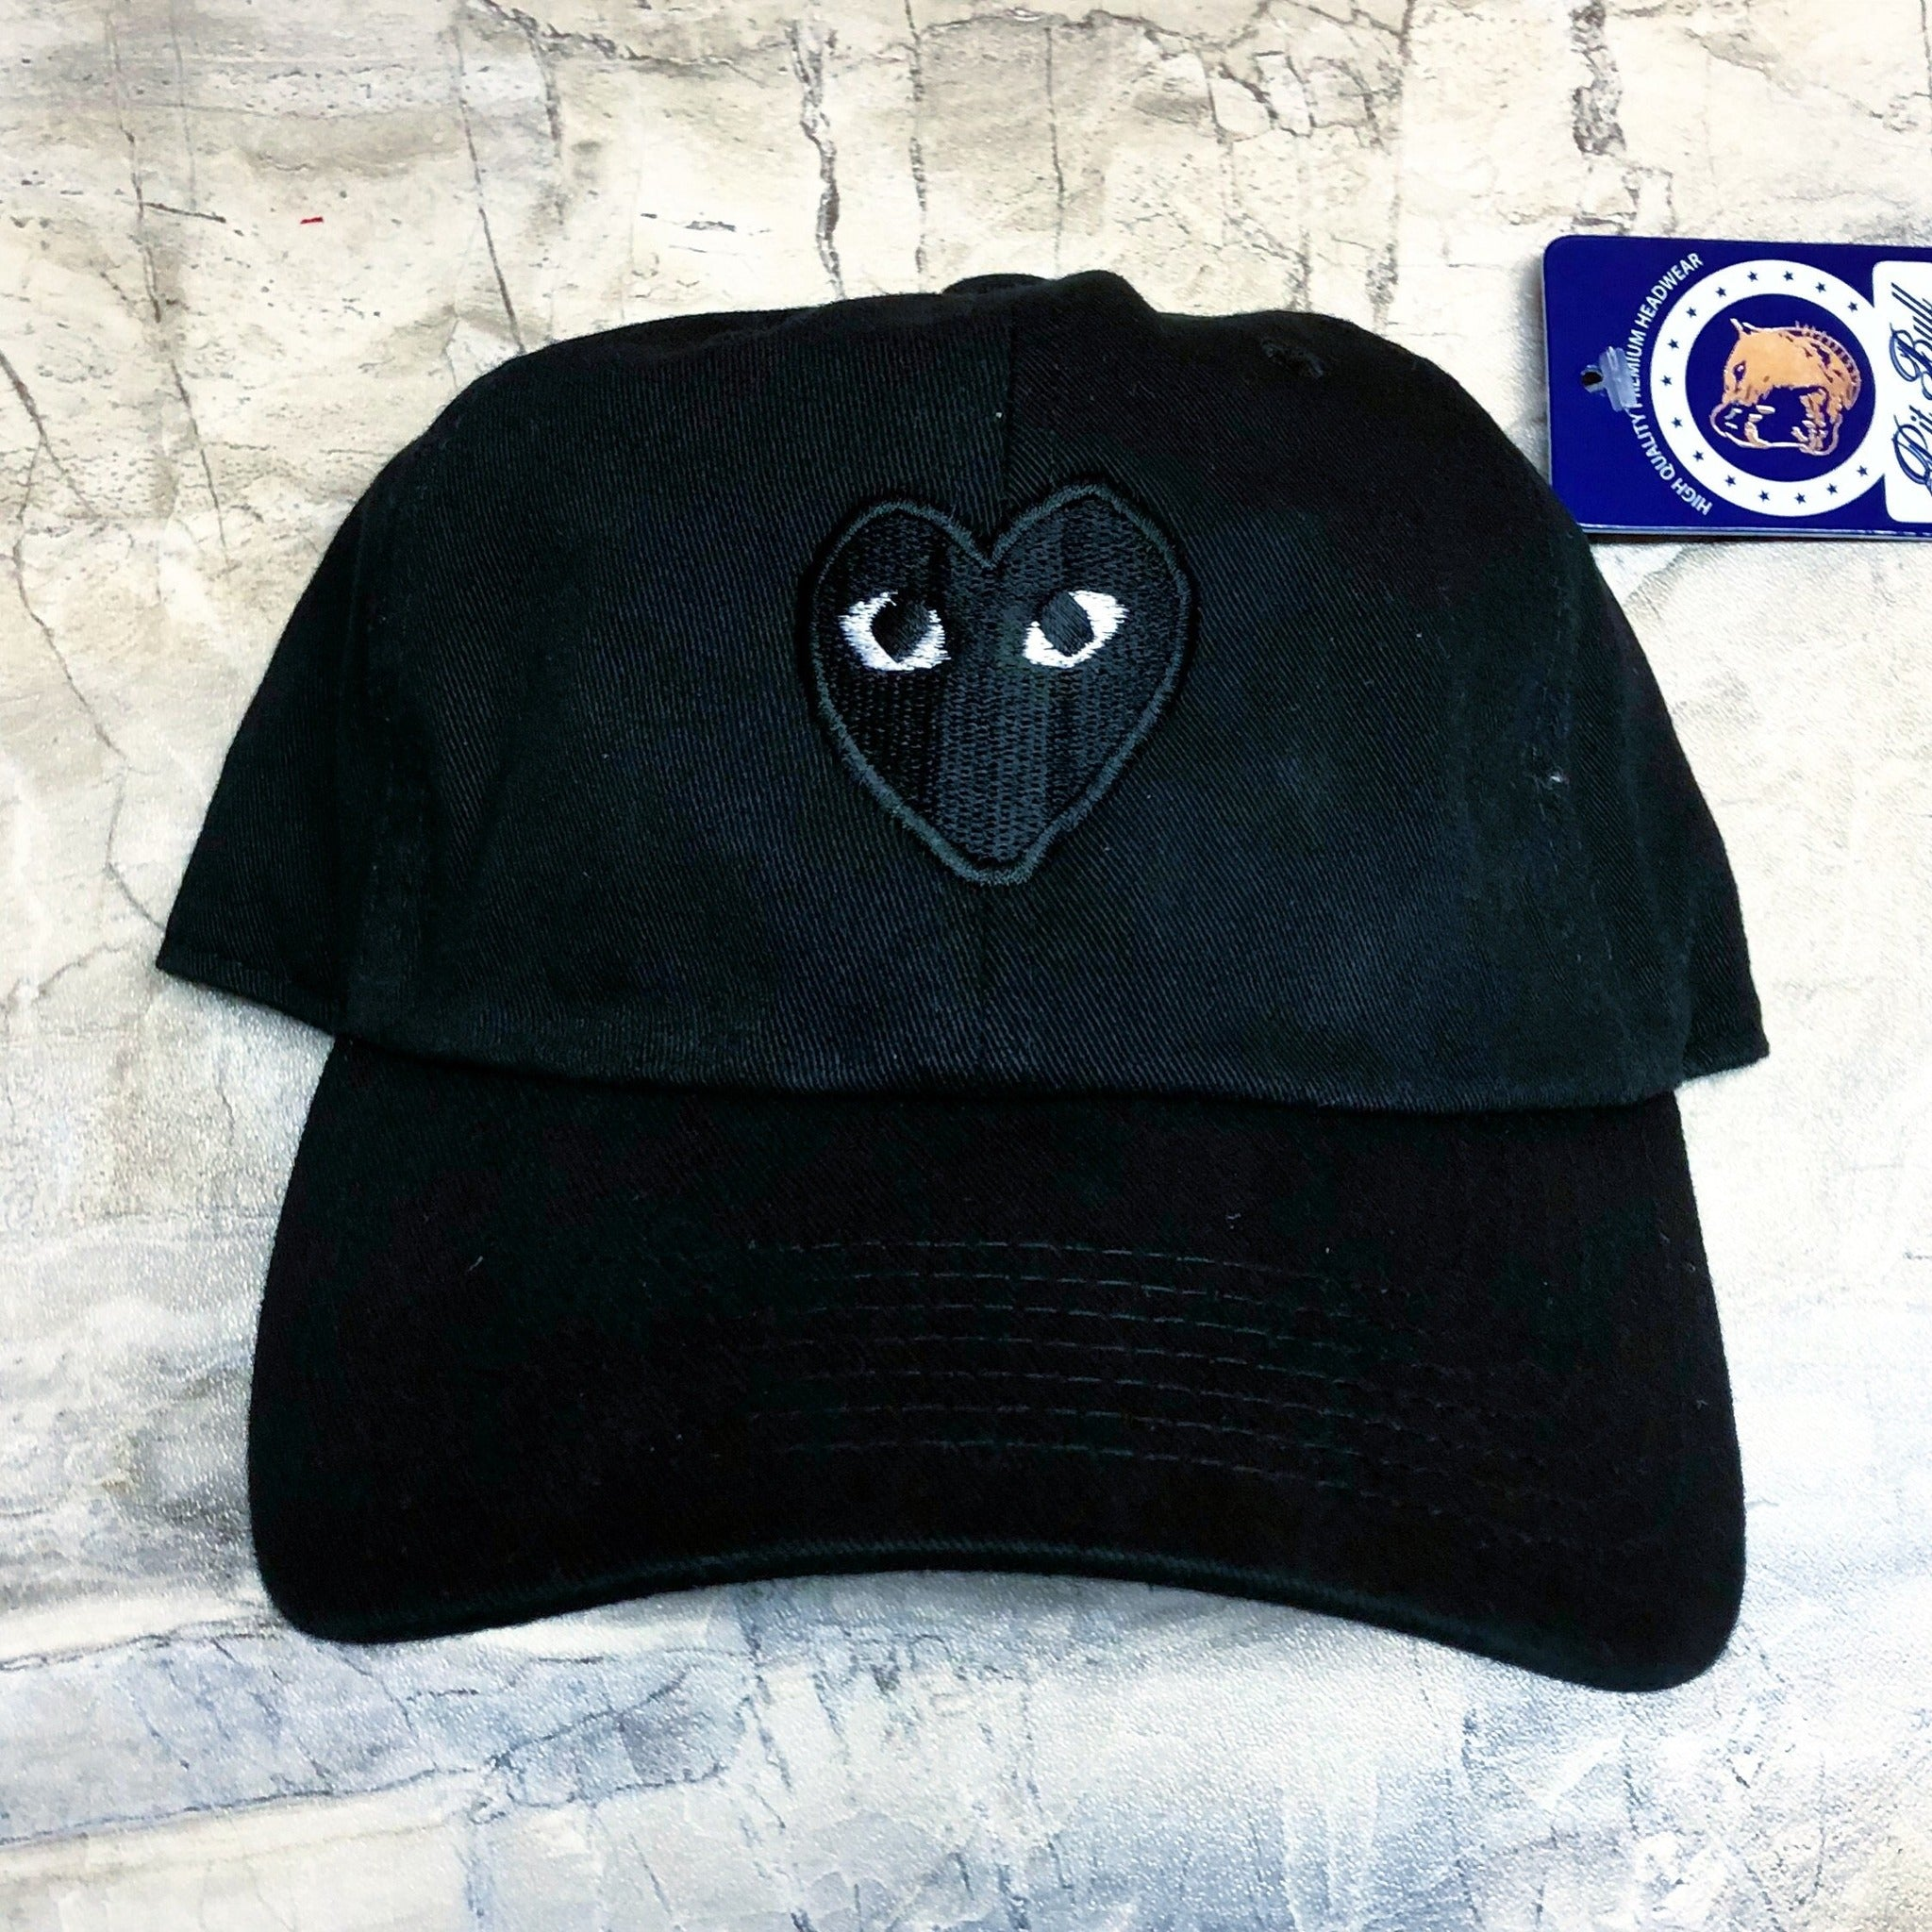 Buy Black heart dad hat strapback cap at The Hat Plug for only  20.00 a8aaf64653f